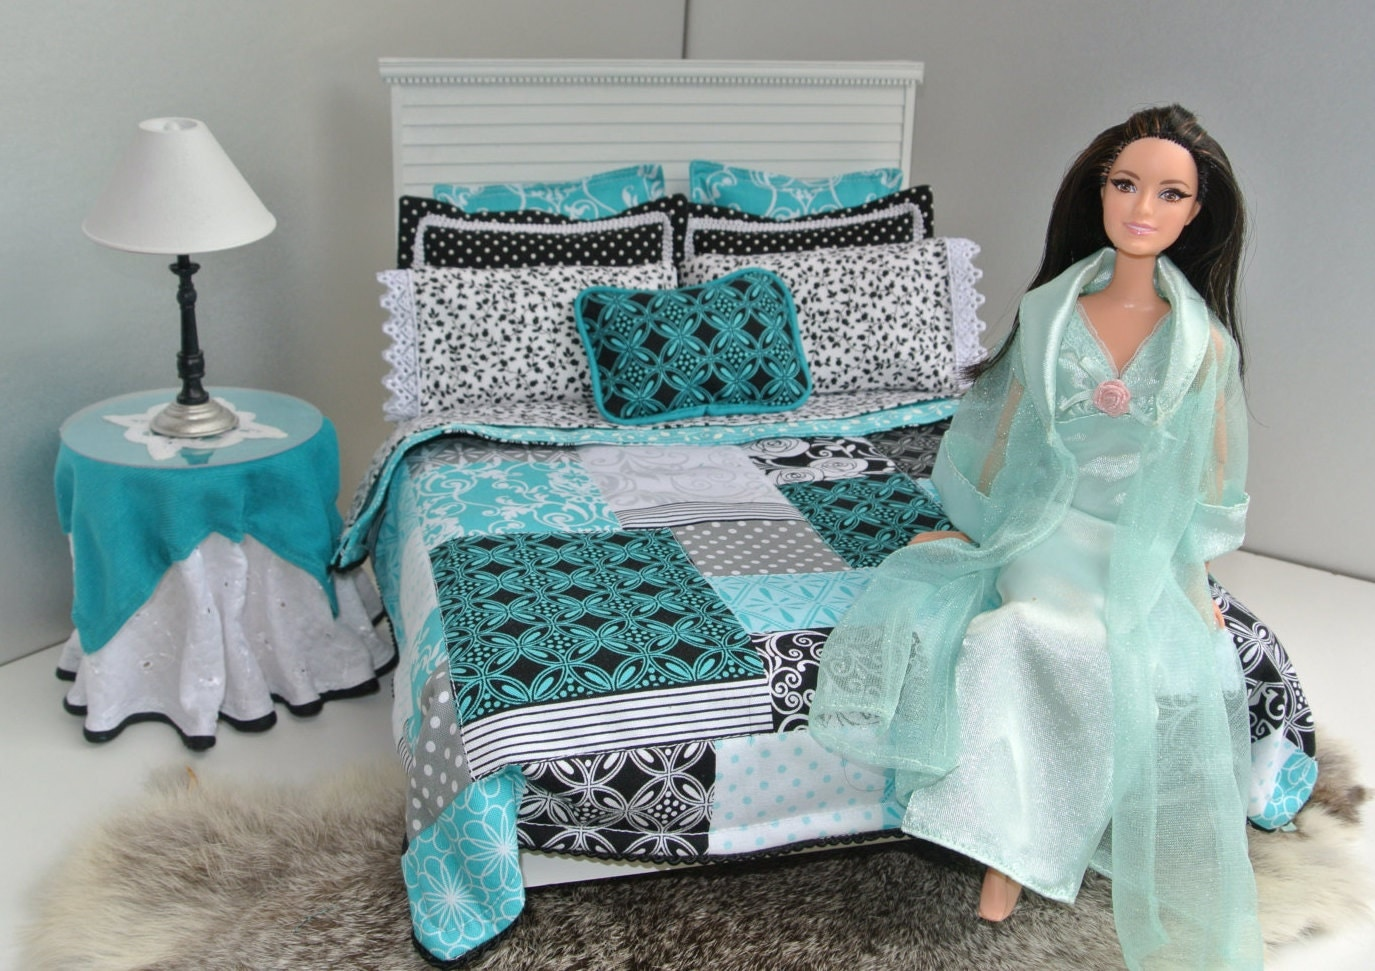 1 6 Scale Barbie Doll Patch Queen Size Bedroom Set